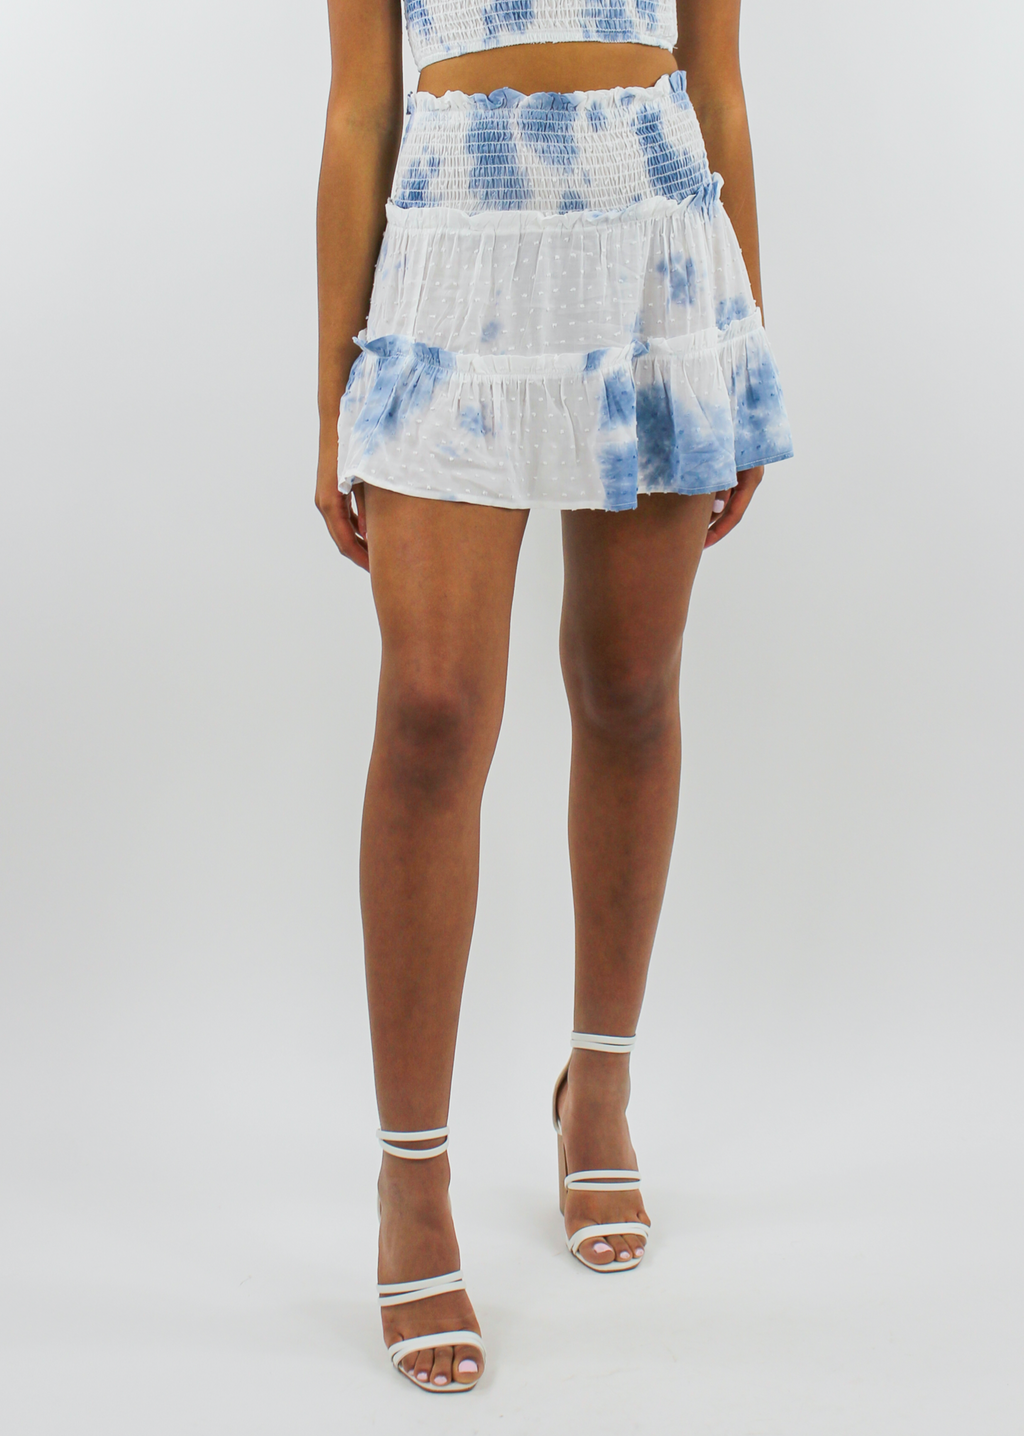 Staring At The Sun Skirt ★ Blue/White - Rock N Rags